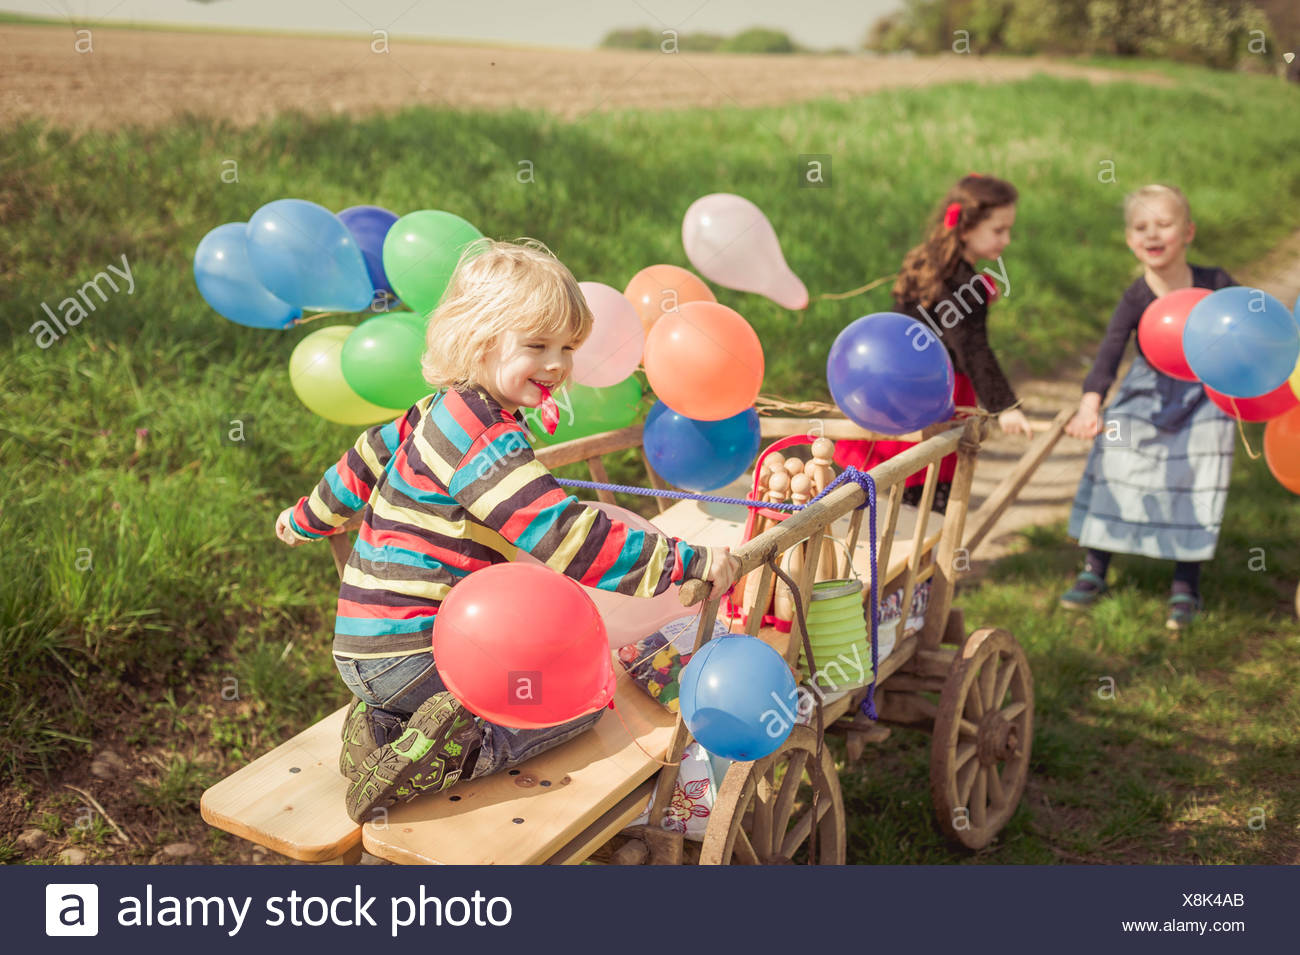 Three children on the move with wooden trolley and balloons - Stock Image